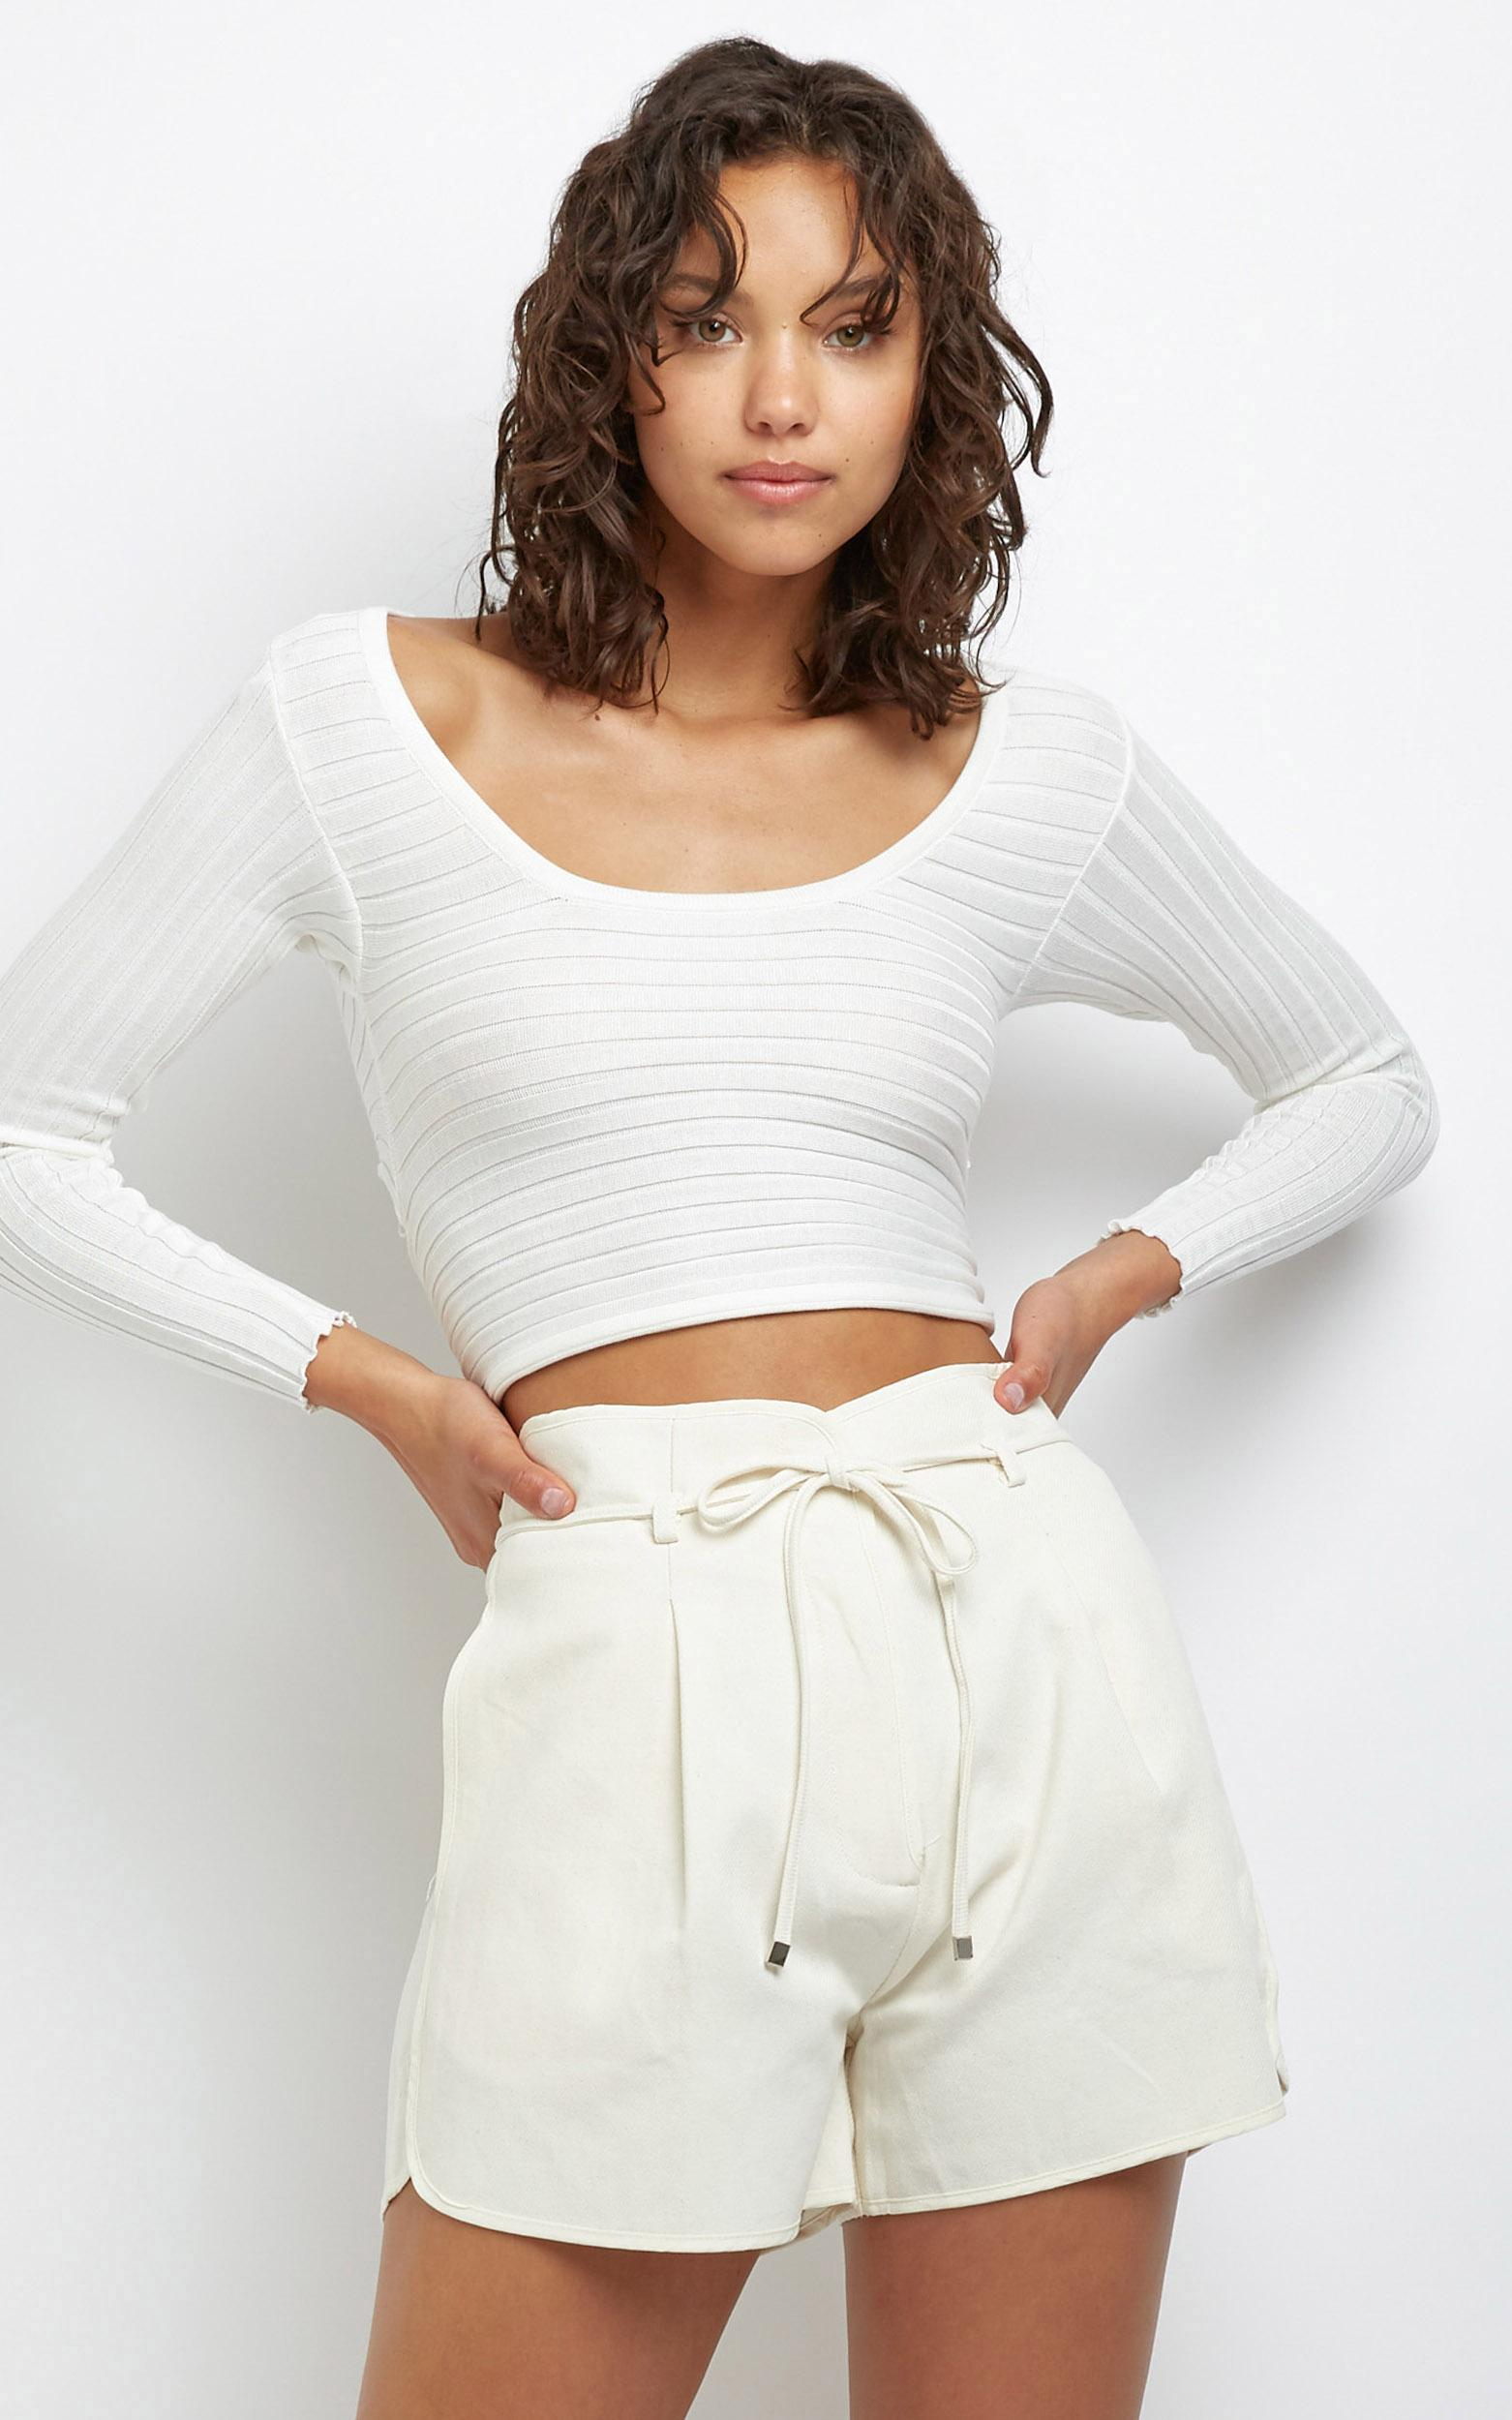 Vida Shorts in Off White - M/L, White, hi-res image number null